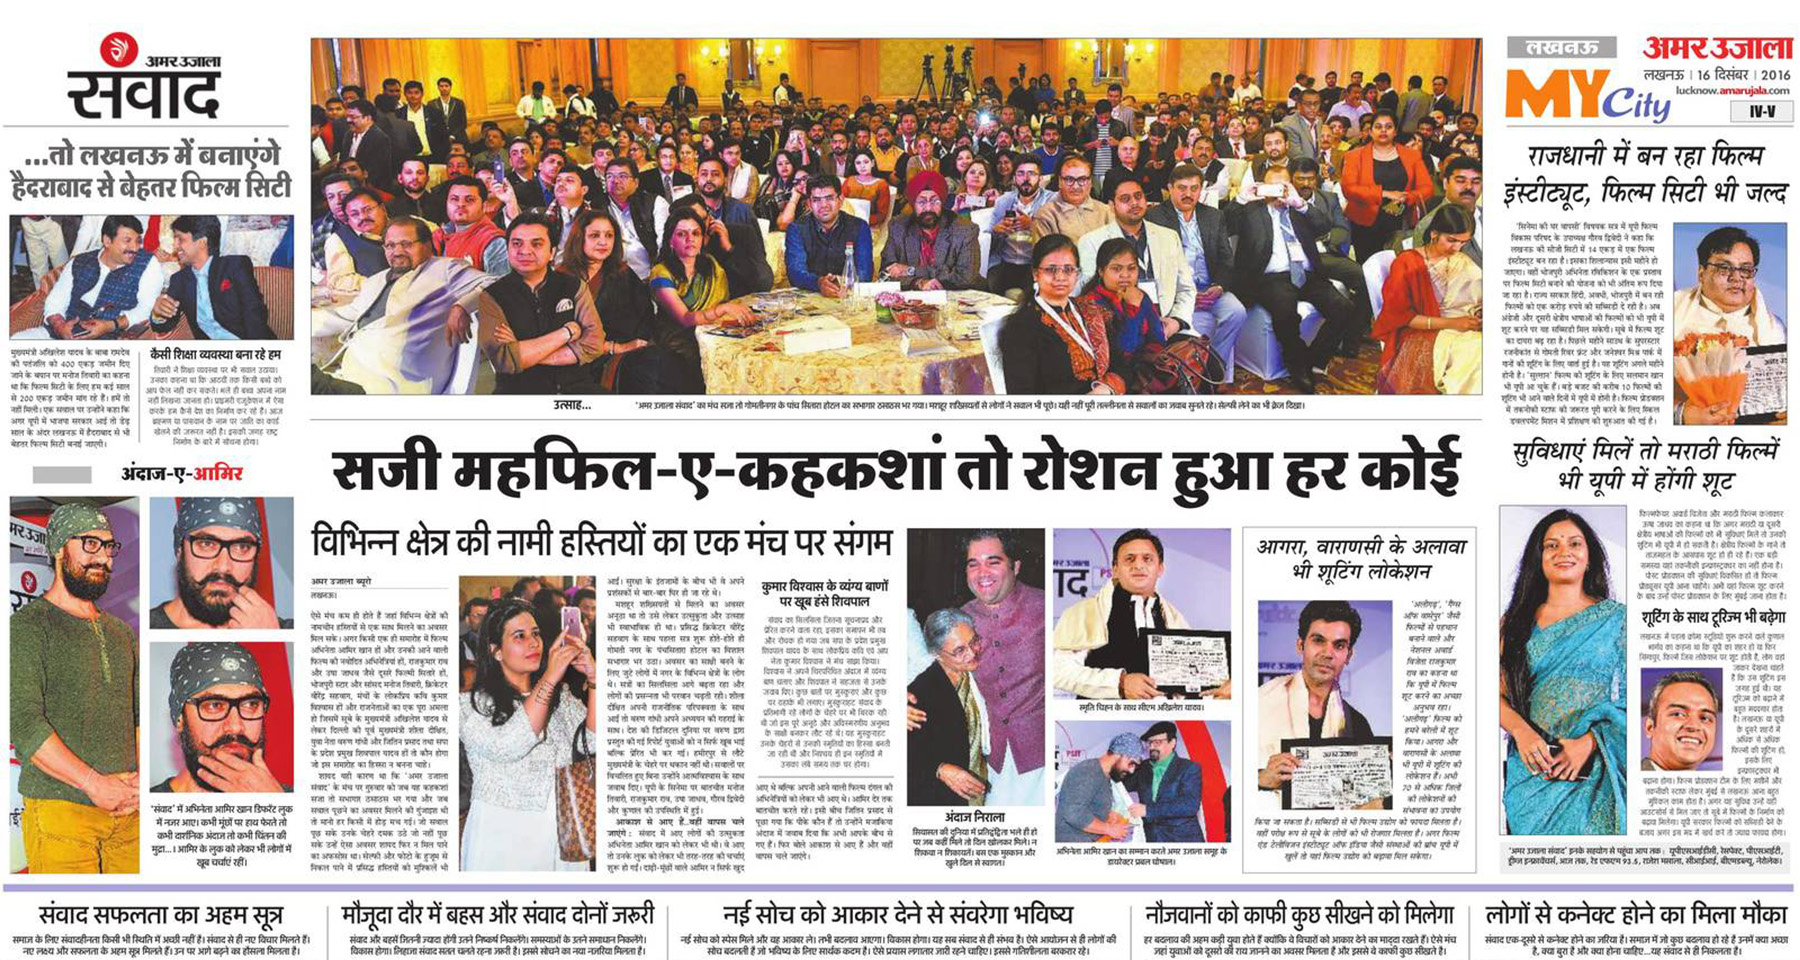 Amar Ujala reaches global audience of 55 million with multi-platform event